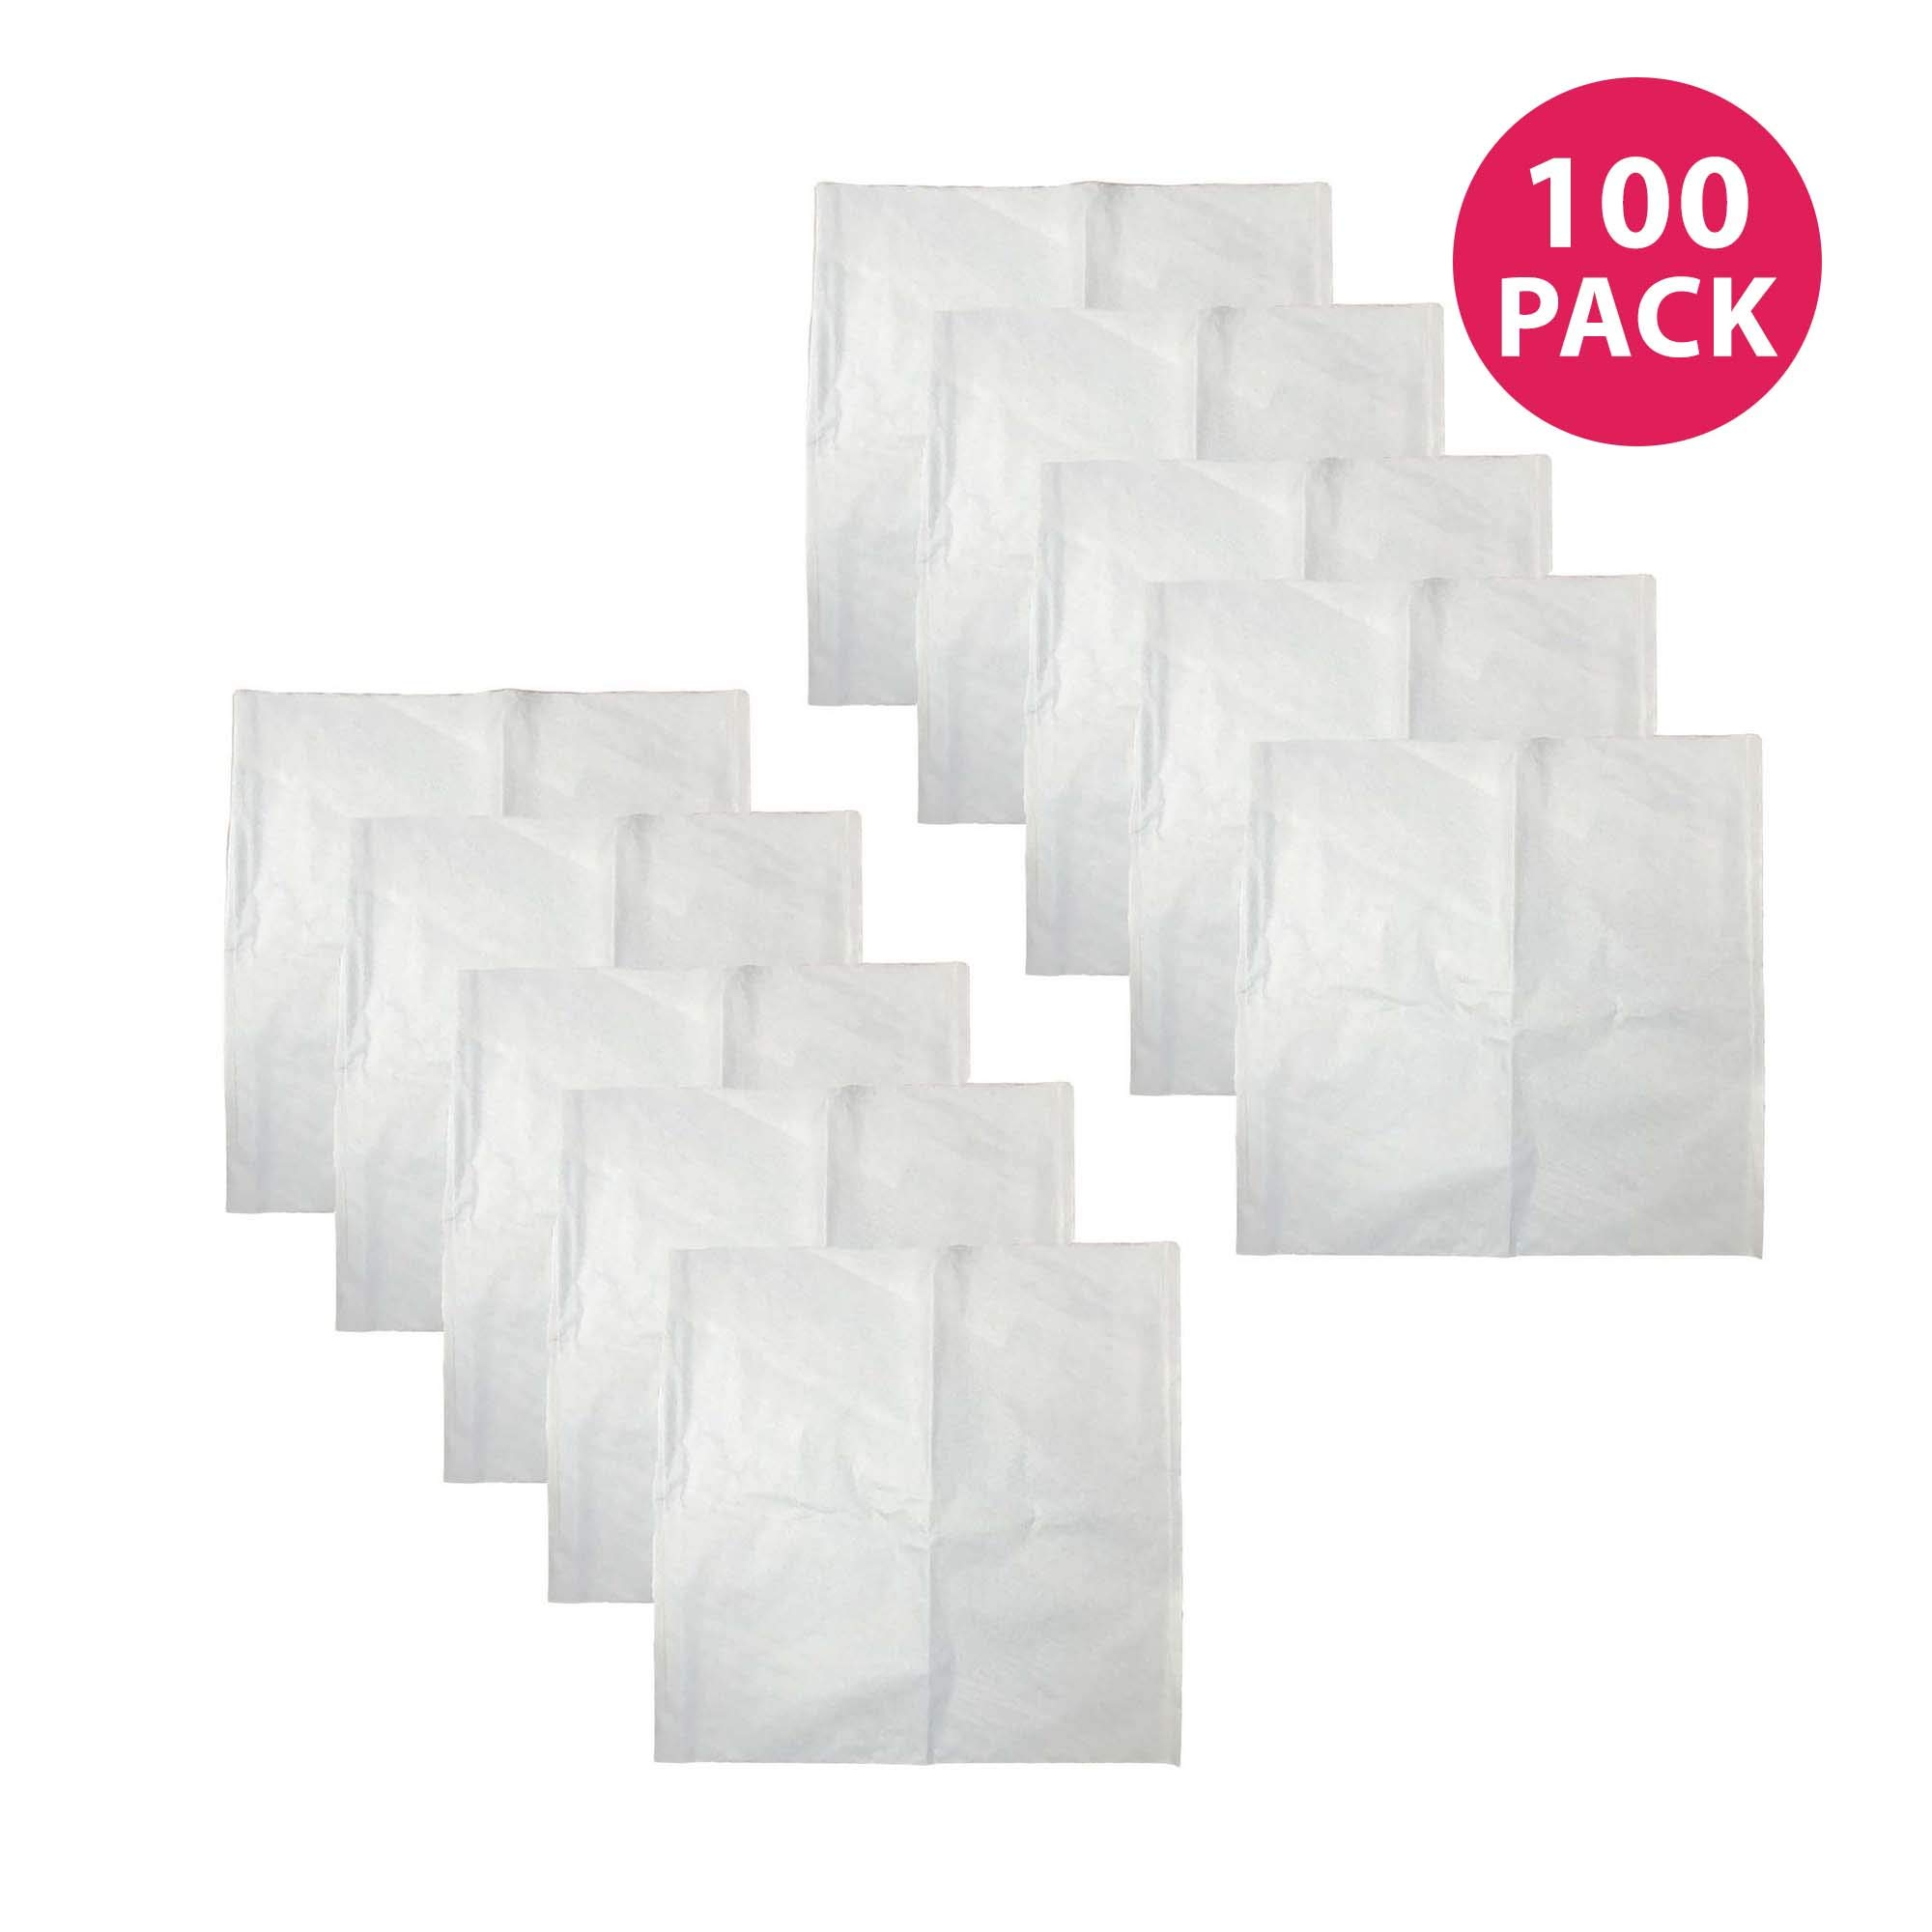 Think Crucial Replacement Coffee Filters Compatible With Toddy Paper Coffee Filter Part - 20.3 x 11.1 x 0.4 - Perfect For Cold Brew System Five (5) Gallon Commercial Cold Brew Brewers (100 Pack)